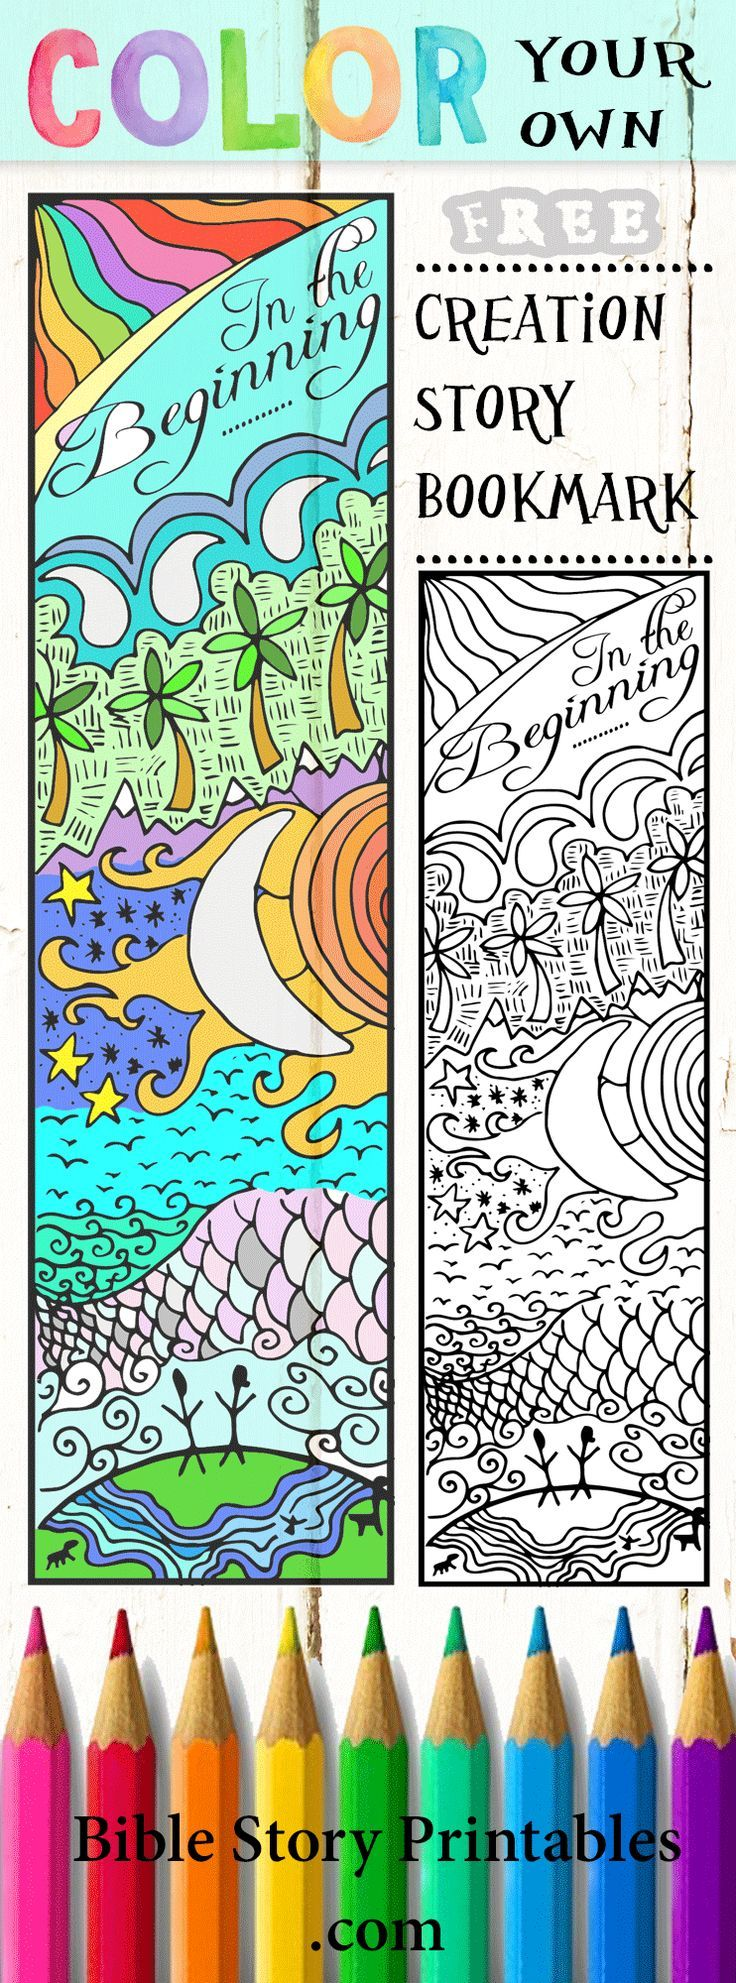 Free printable coloring pages gods creation - Color Your Own Creation Story Bible Bookmarks Http Thecraftyclassroom Com